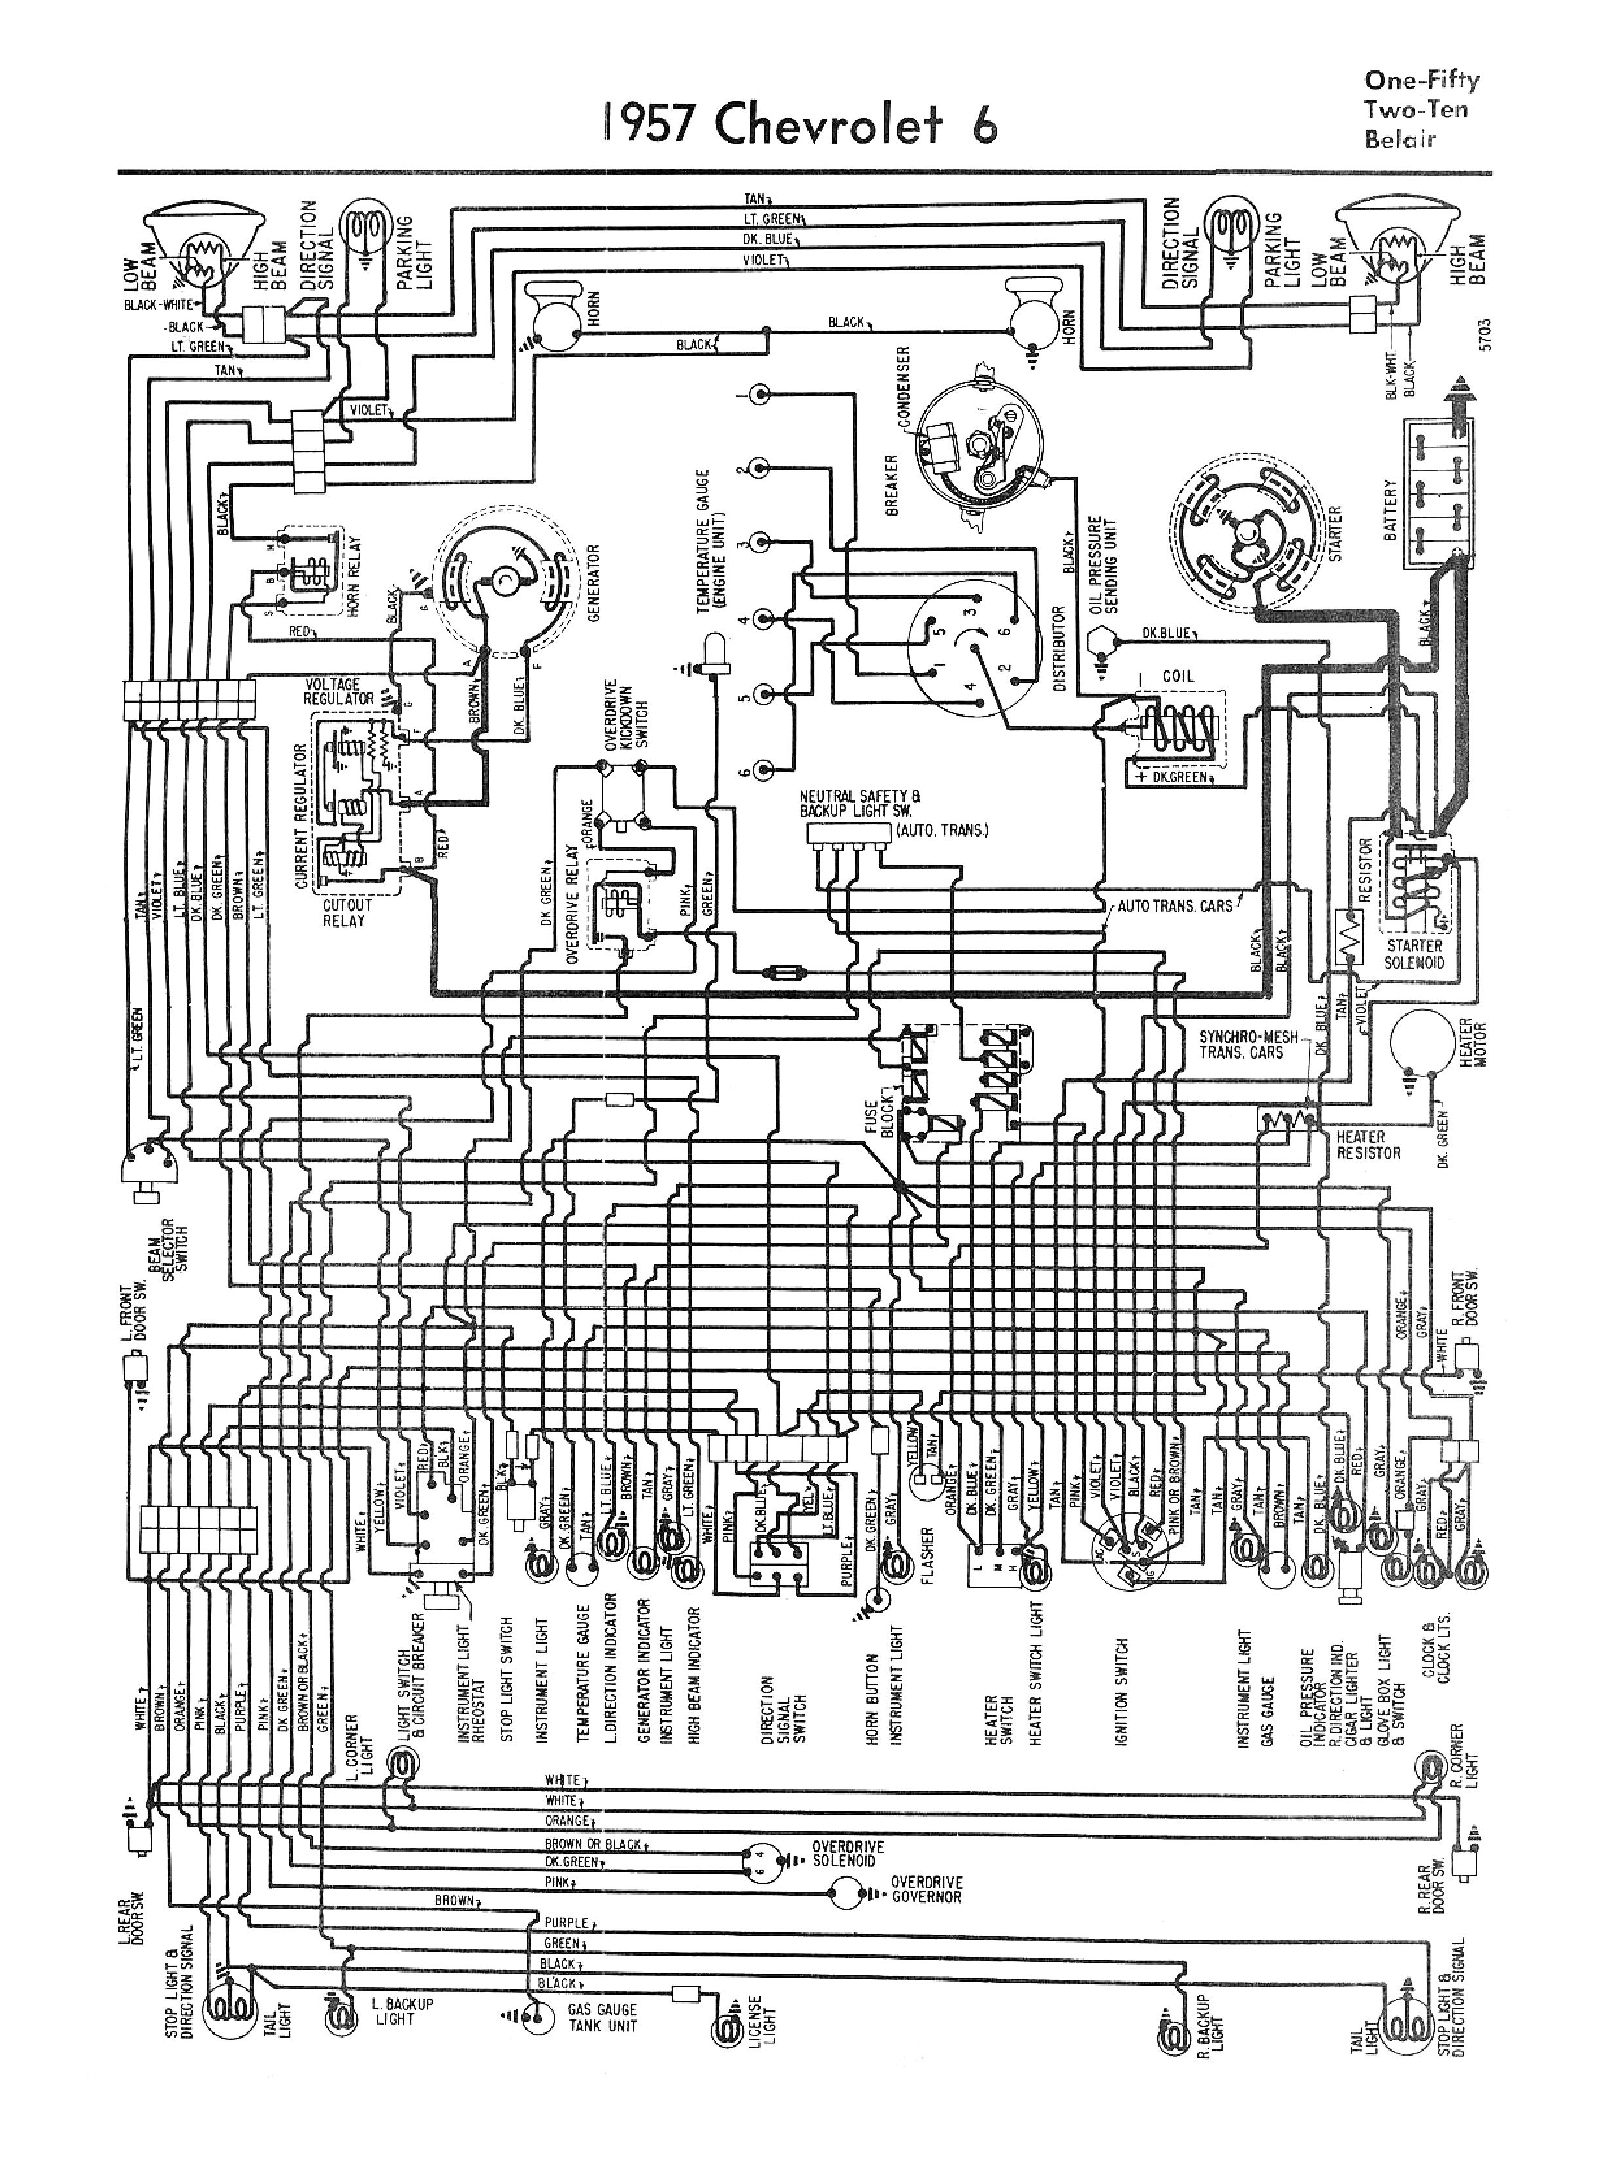 1959 Chrysler Wiring Diagram Reinvent Your For 2004 Sebring 1960 Corvette Detailed Schematics Rh Mrskindsclass Com 2001 Town And Country